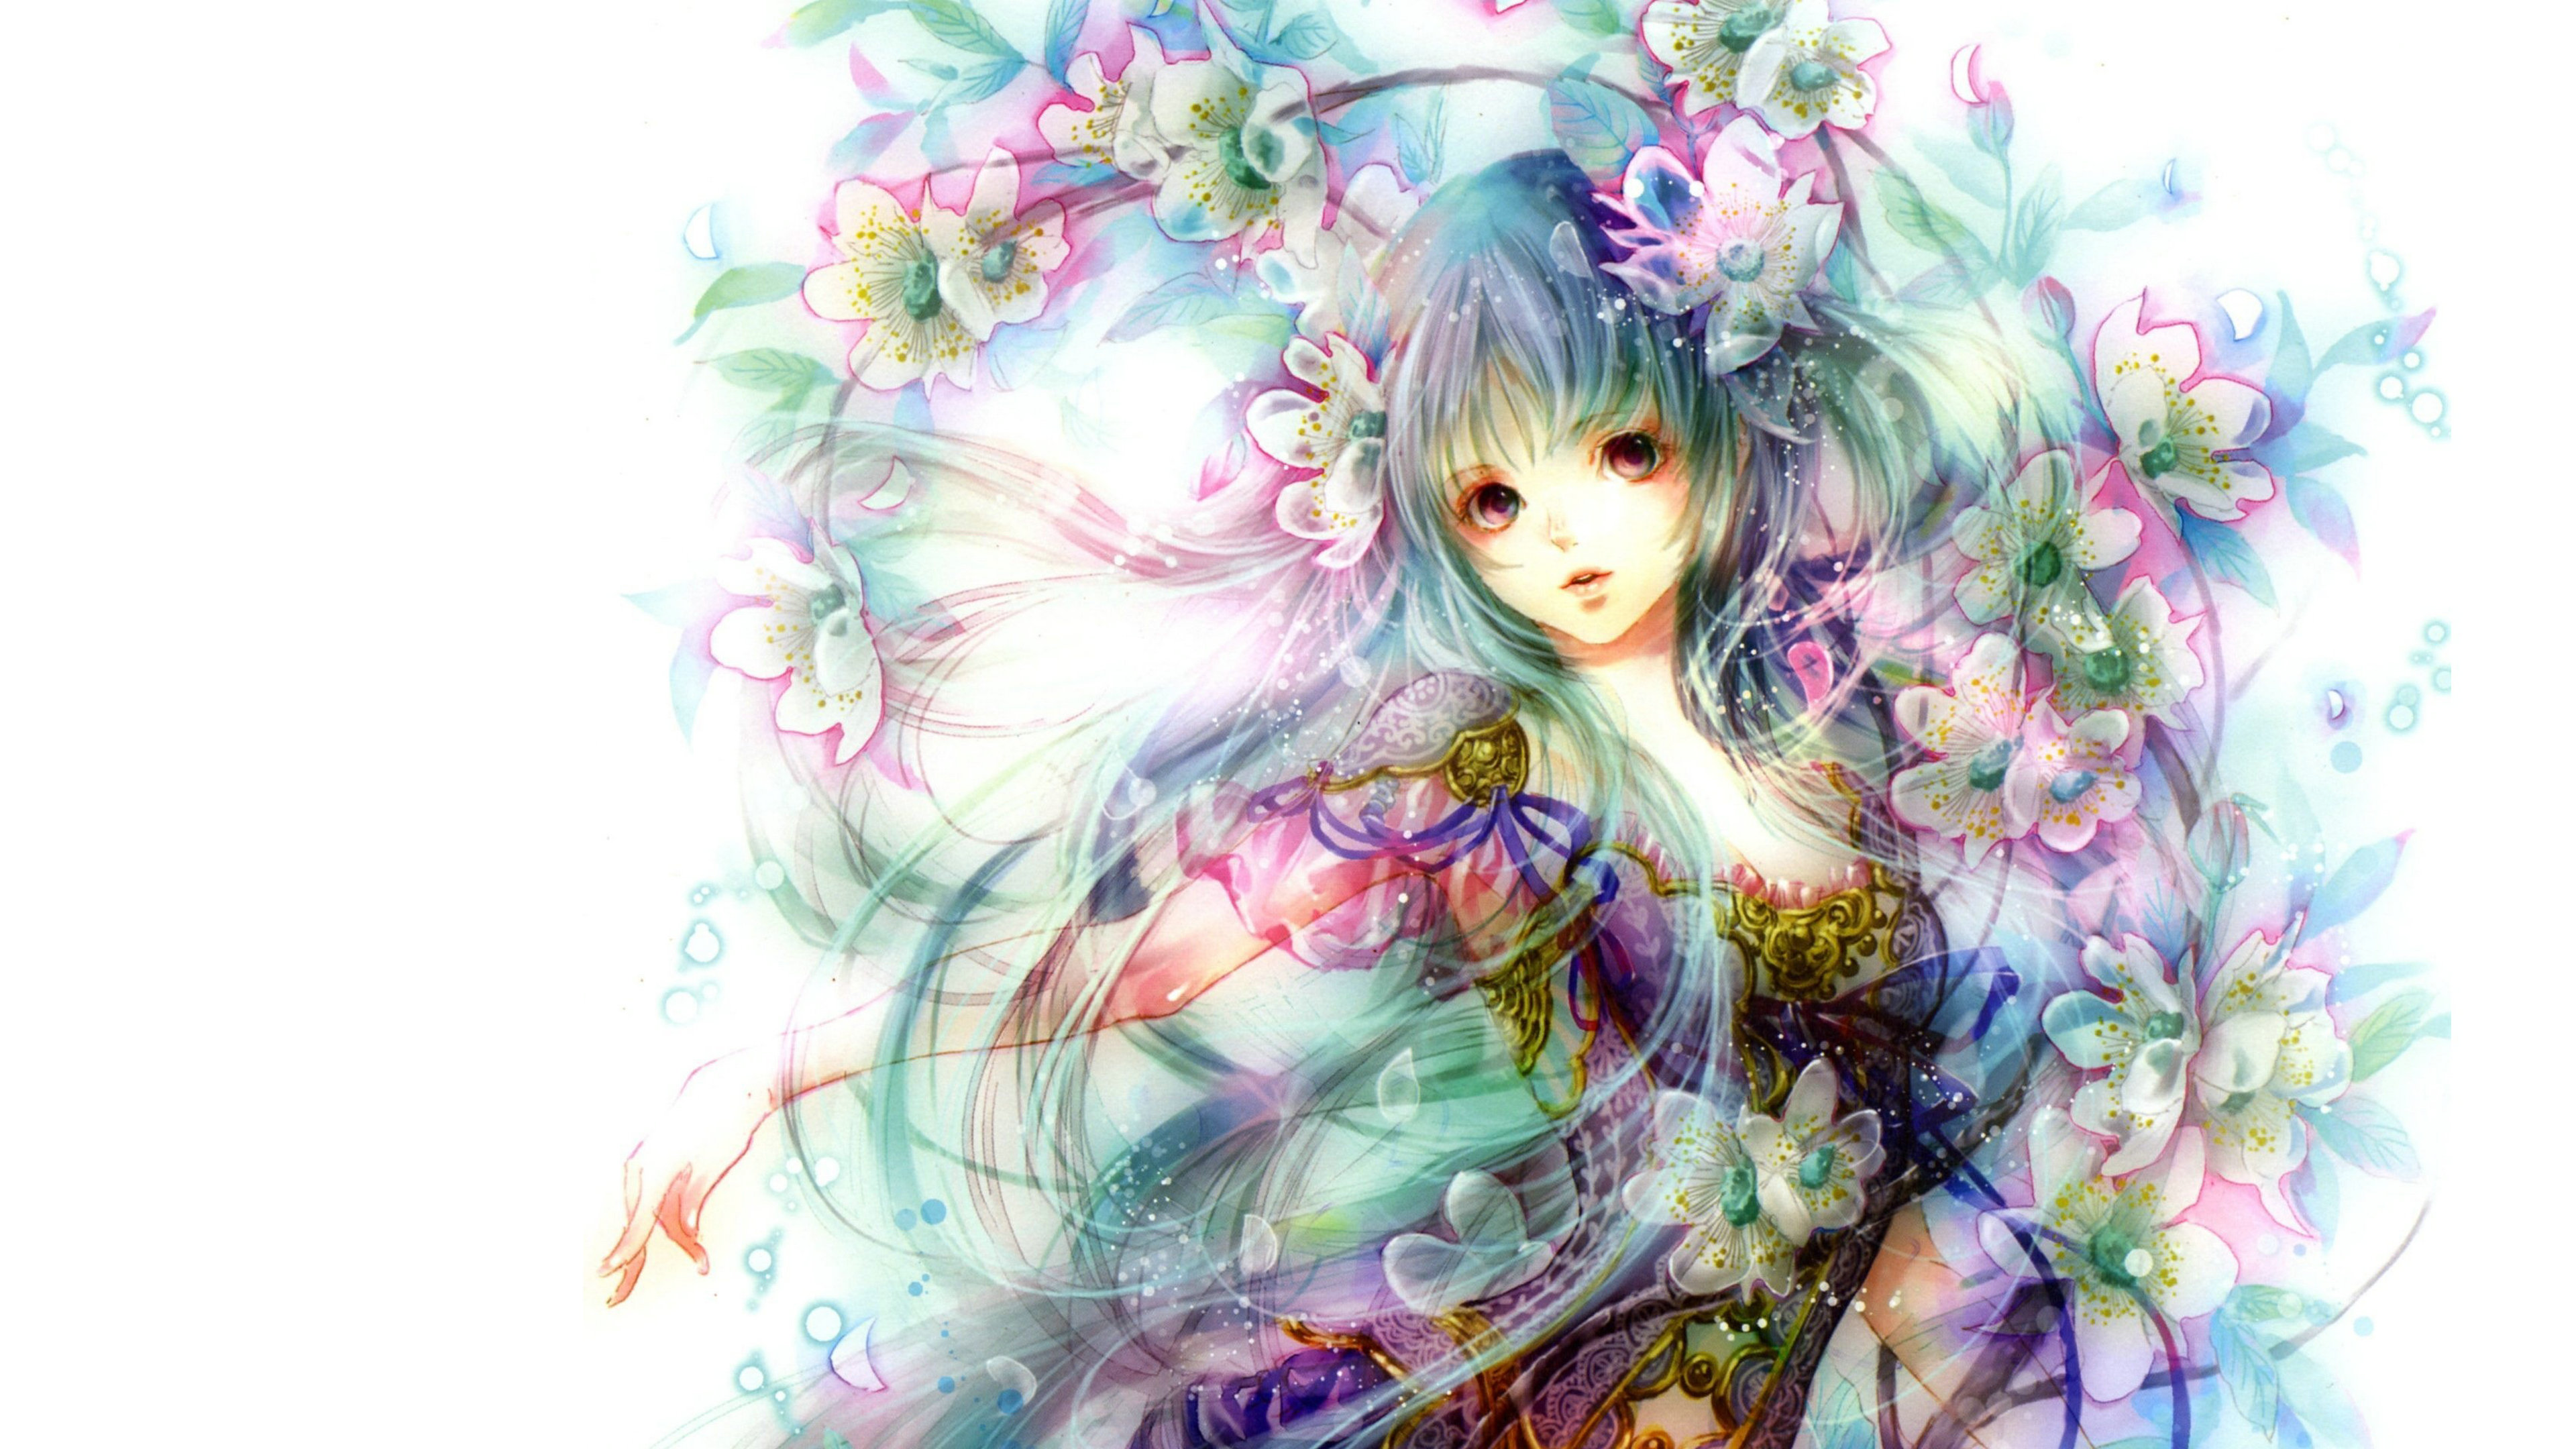 Anime Fairy Wallpaper